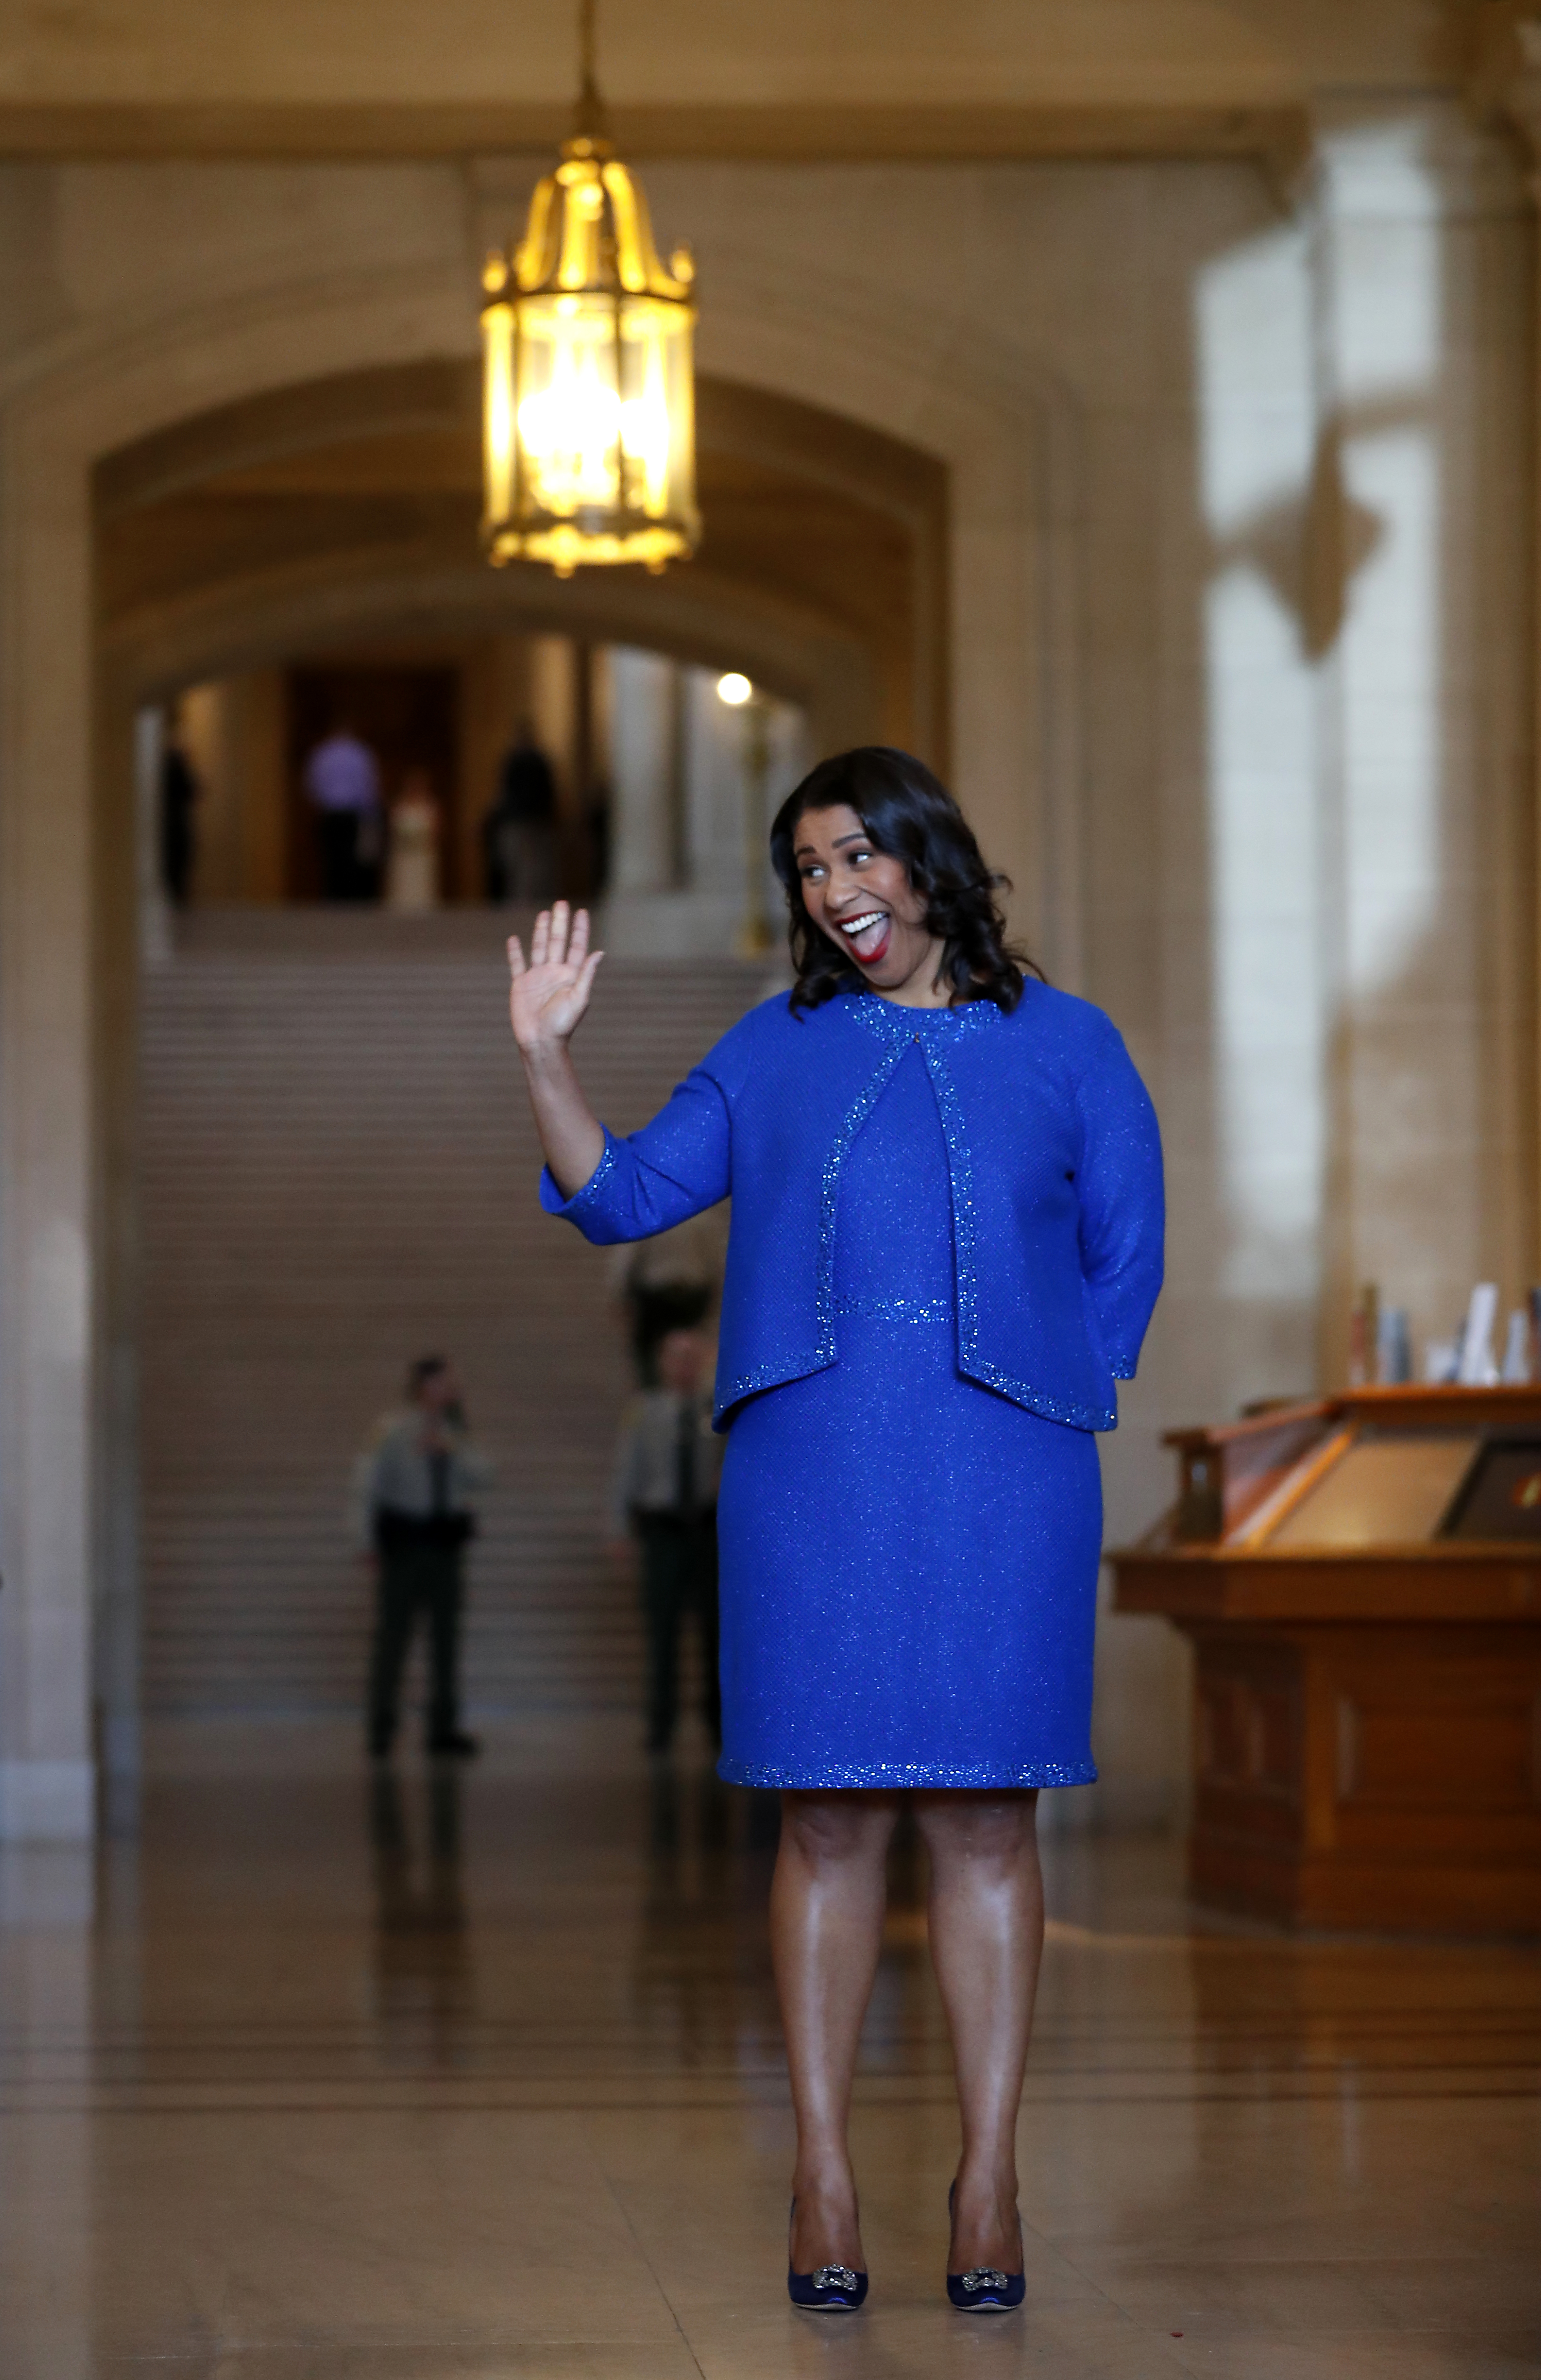 <div class='meta'><div class='origin-logo' data-origin='none'></div><span class='caption-text' data-credit='The Chronicle'>London Breed waves to the crowd during her inauguration ceremony on Wednesday, July 11, 2018, in San Francisco.</span></div>